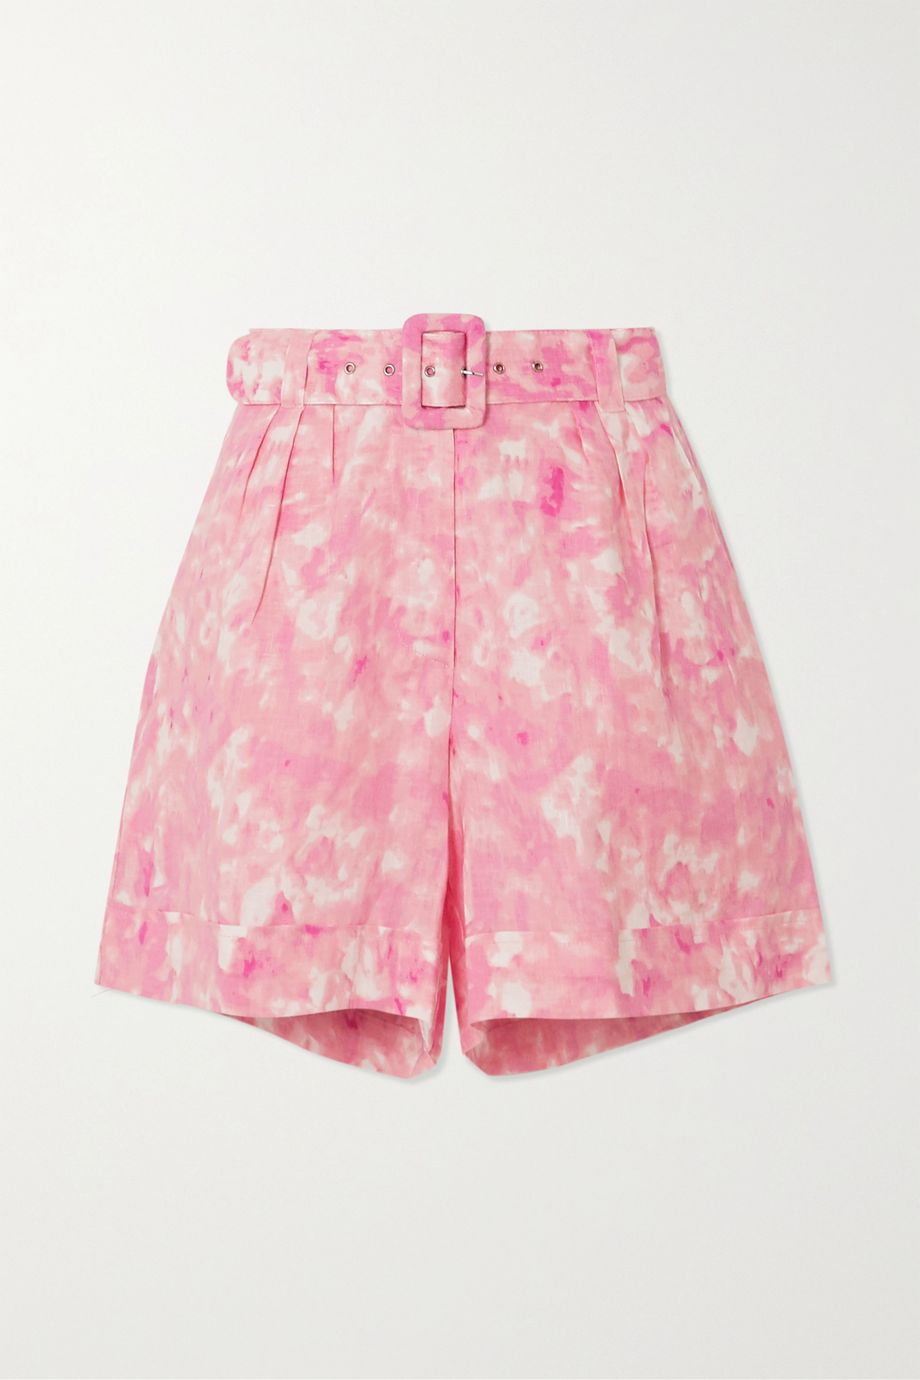 Faithfull The Brand Les Deux belted tie-dyed linen shorts